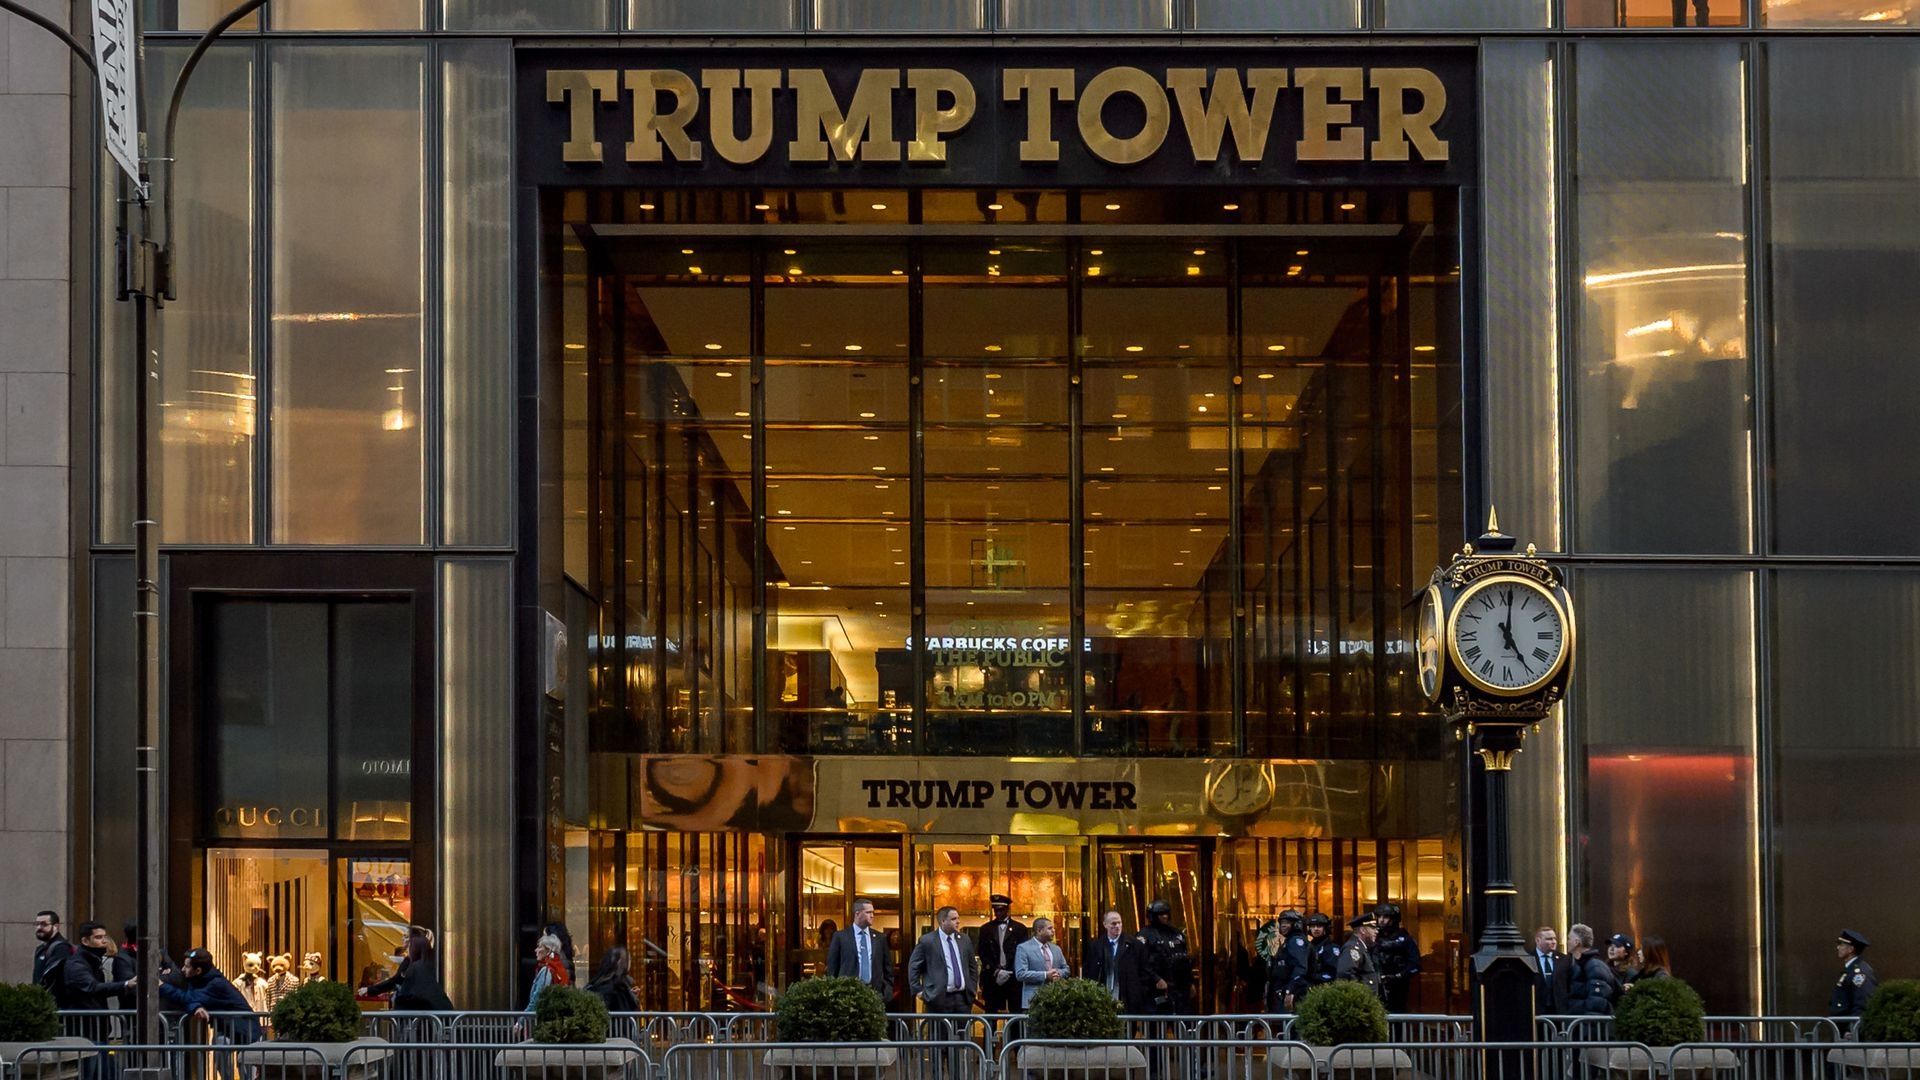 This image shows the front doors of Trump Tower, which are blocked off by concrete barriers.